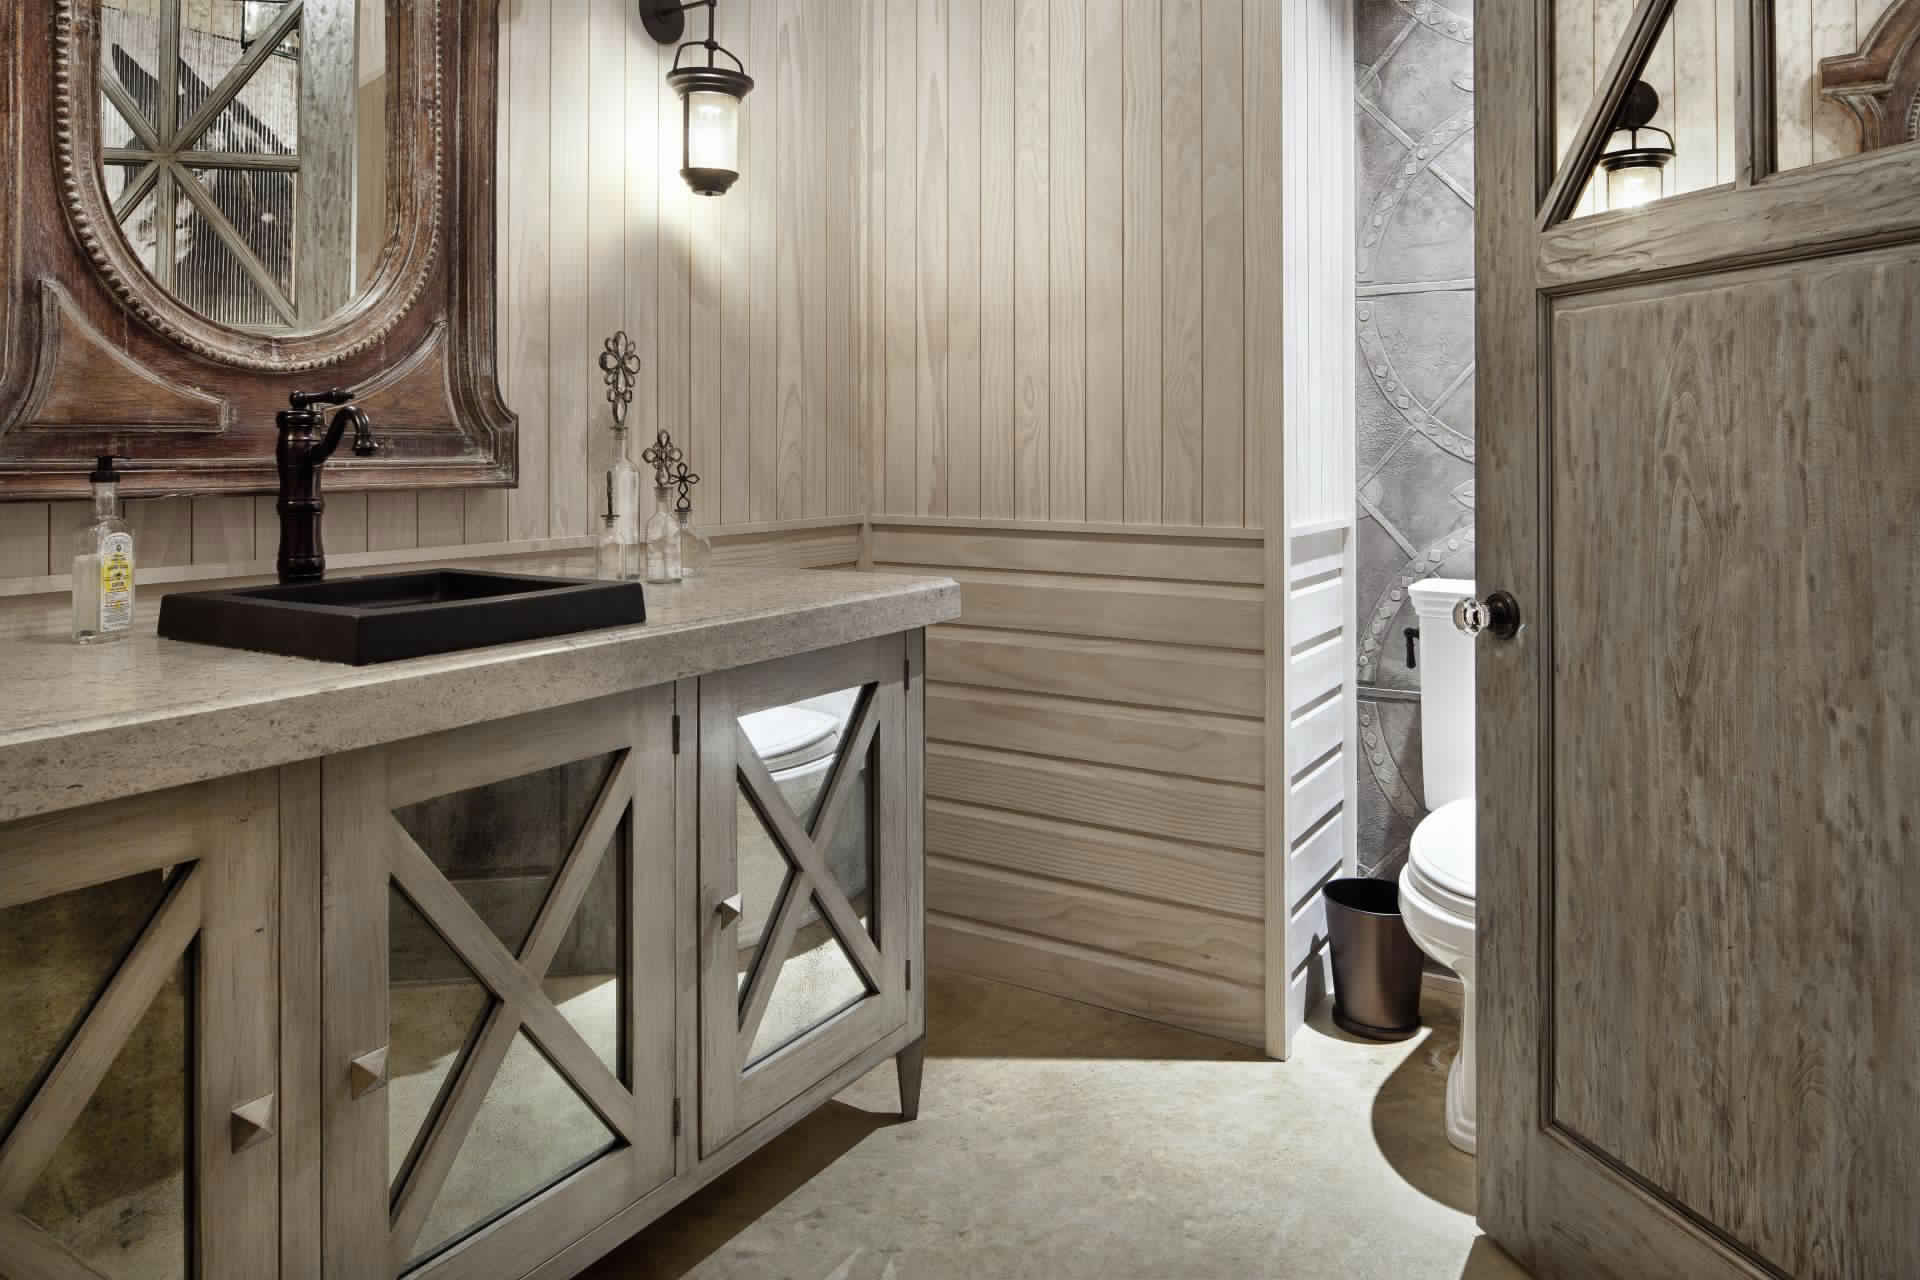 Rustic Bathroom Ideas-Bathroom design in country style